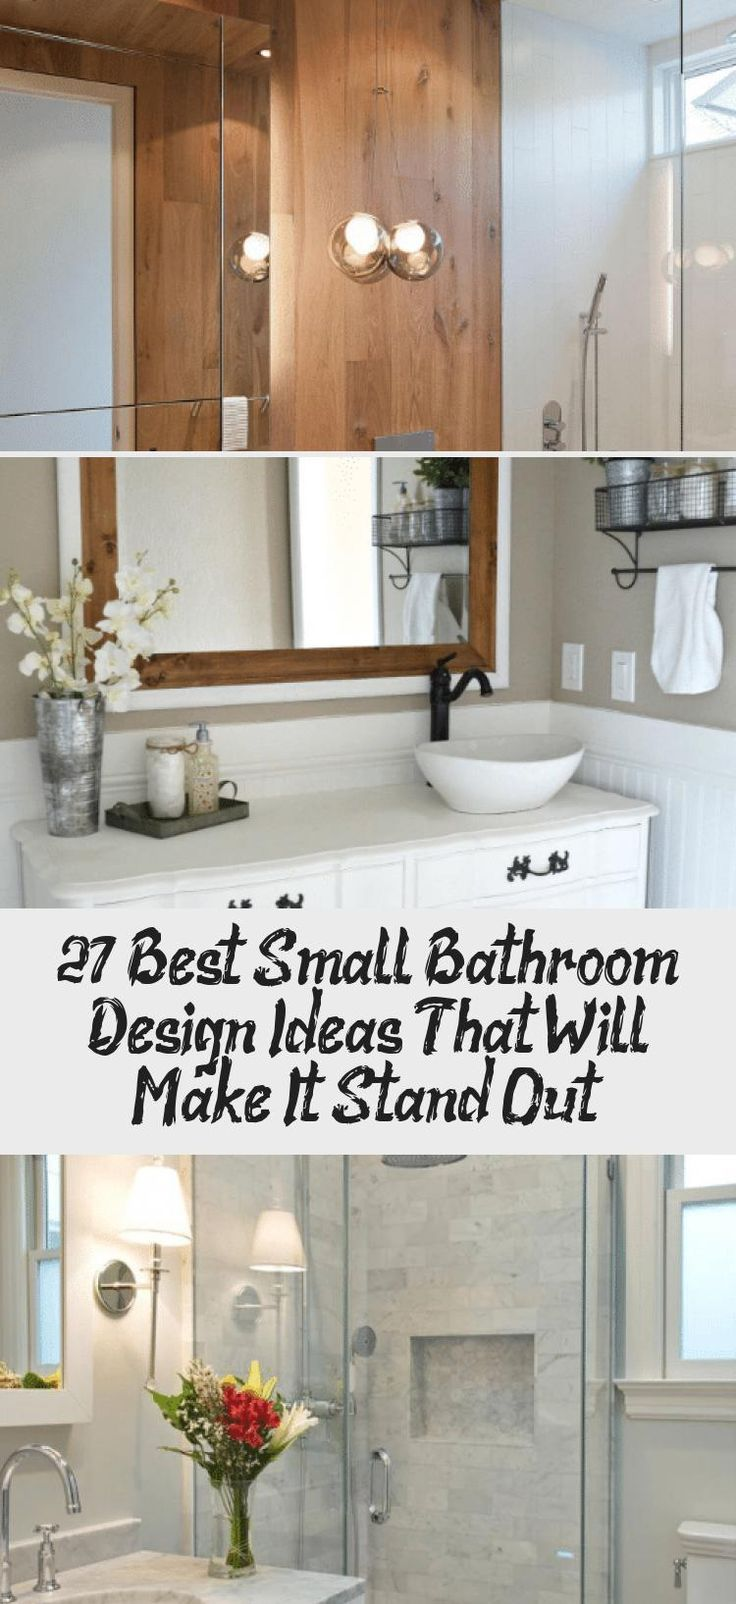 You can still use some cool Small Bathroom Design Ideas ...